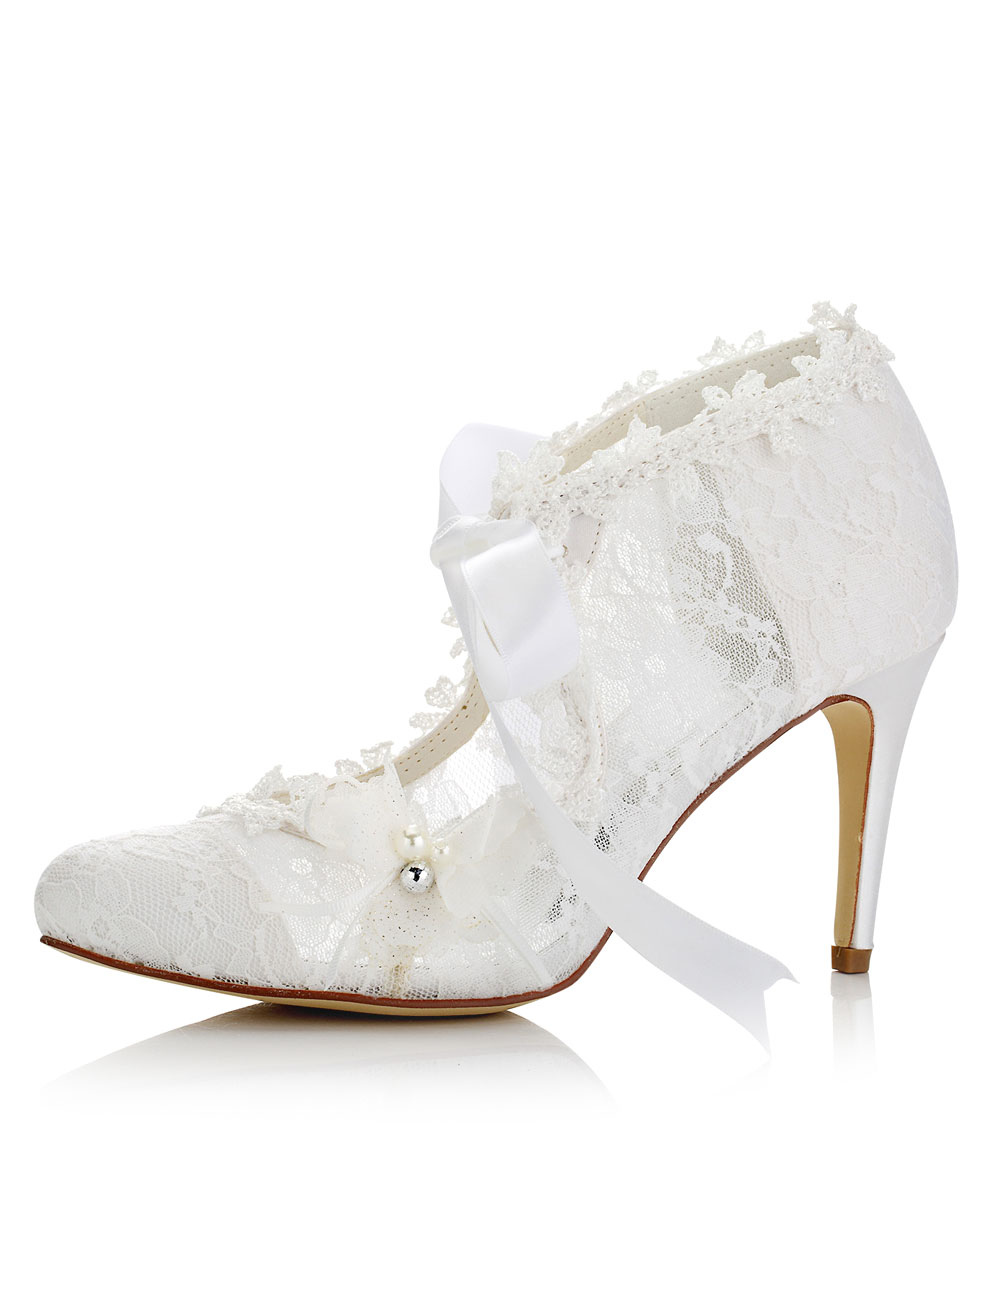 White Wedding Shoes Lace Pointed Toe Lace Up Stiletto High Heels